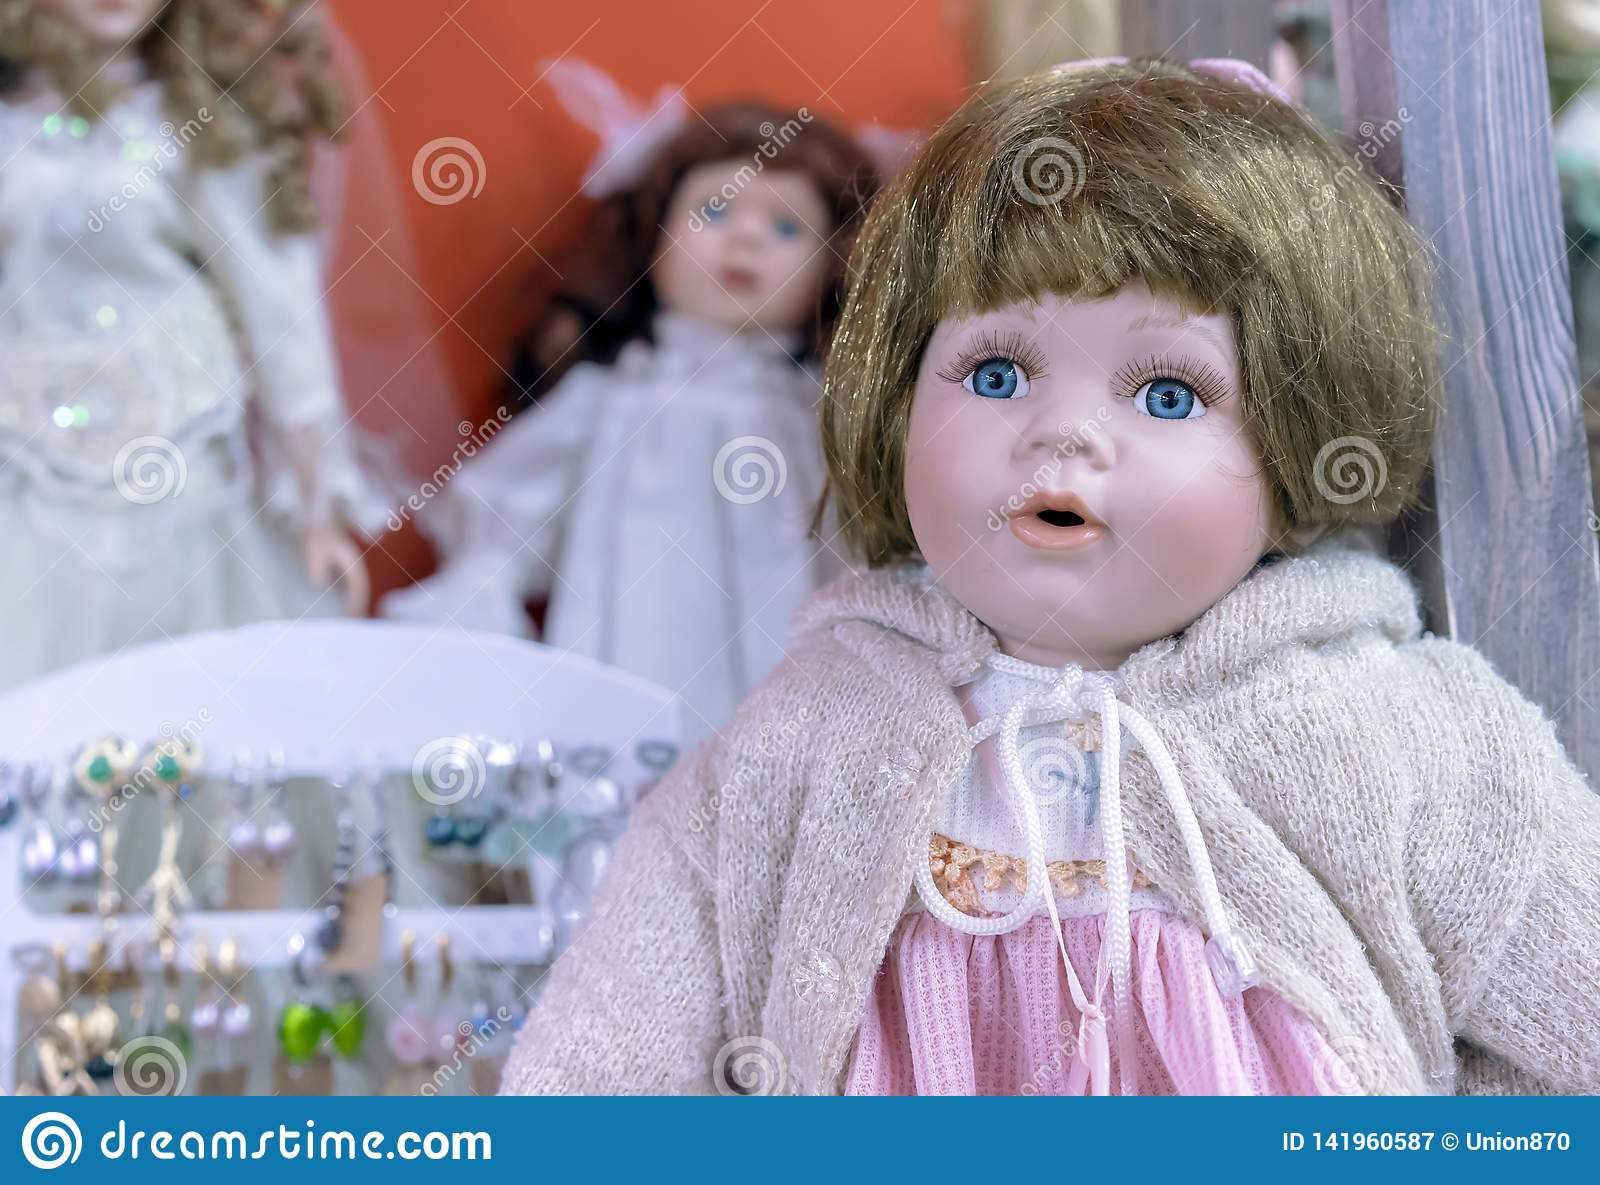 Realistic baby doll with blue eyes in a beige sweater and pink dress